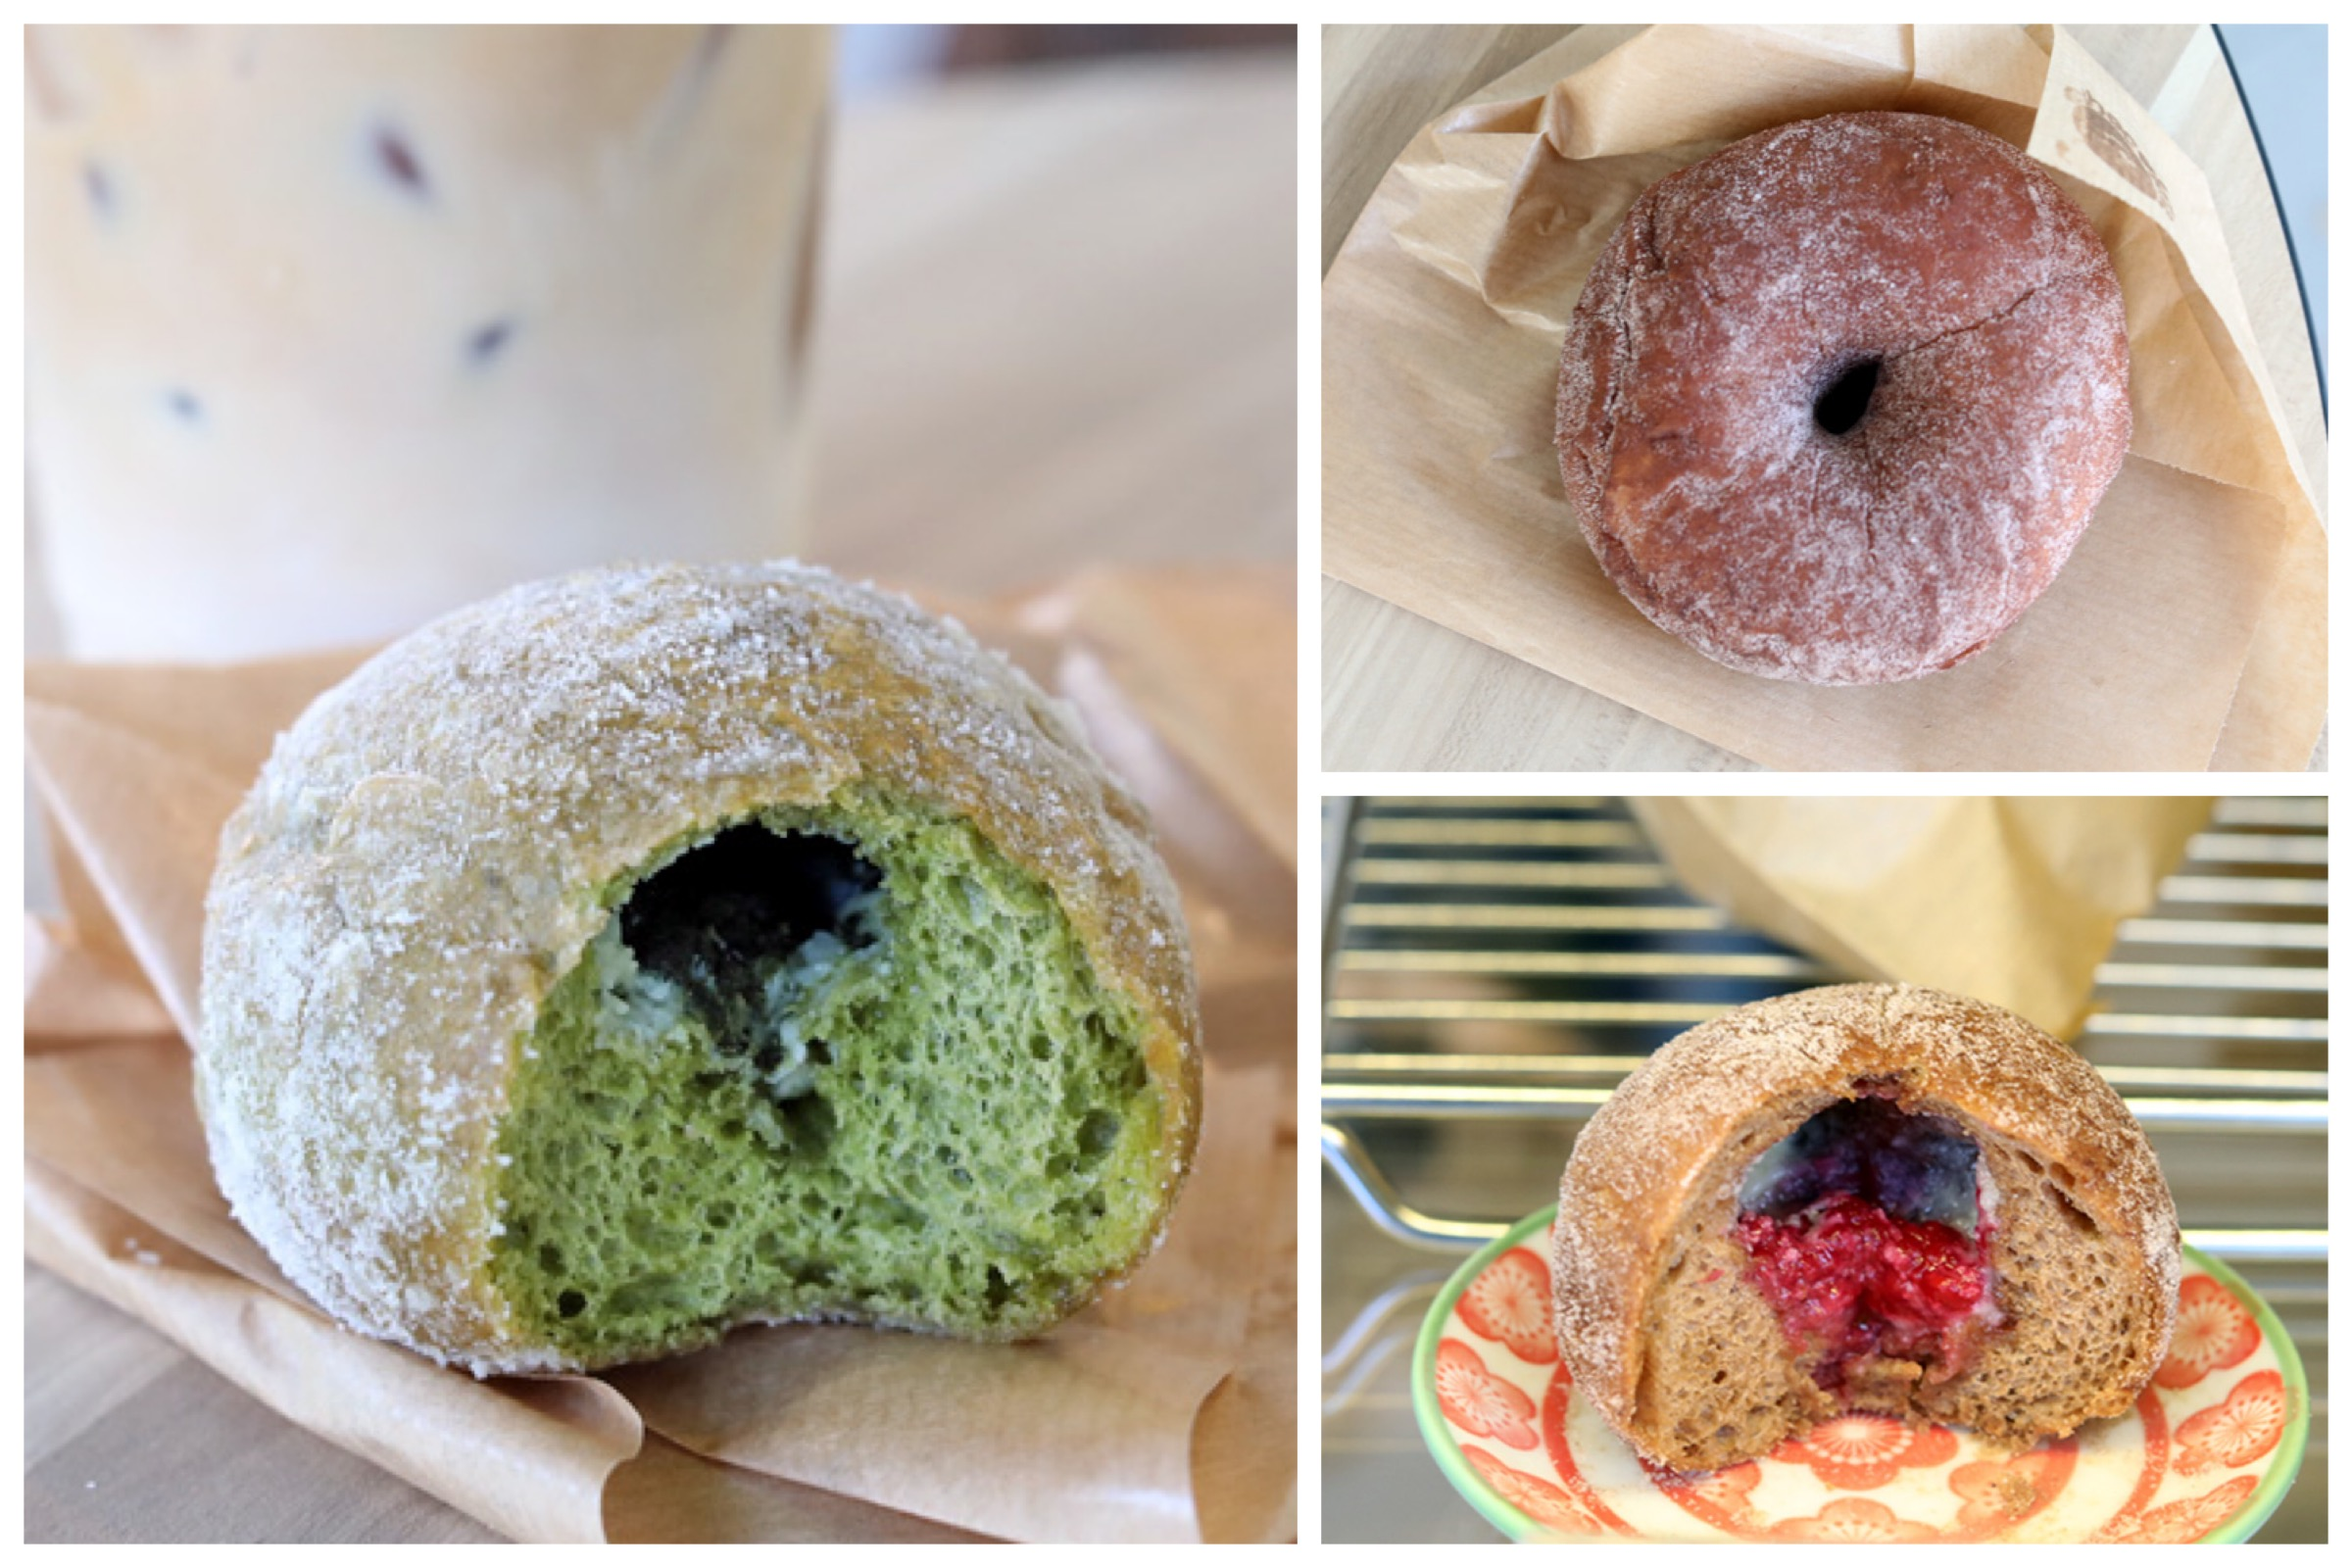 Haritts Donuts ハリッツ - Famous Japanese Donut Shop Opens In Singapore Quietly & Hidden. Now You Know